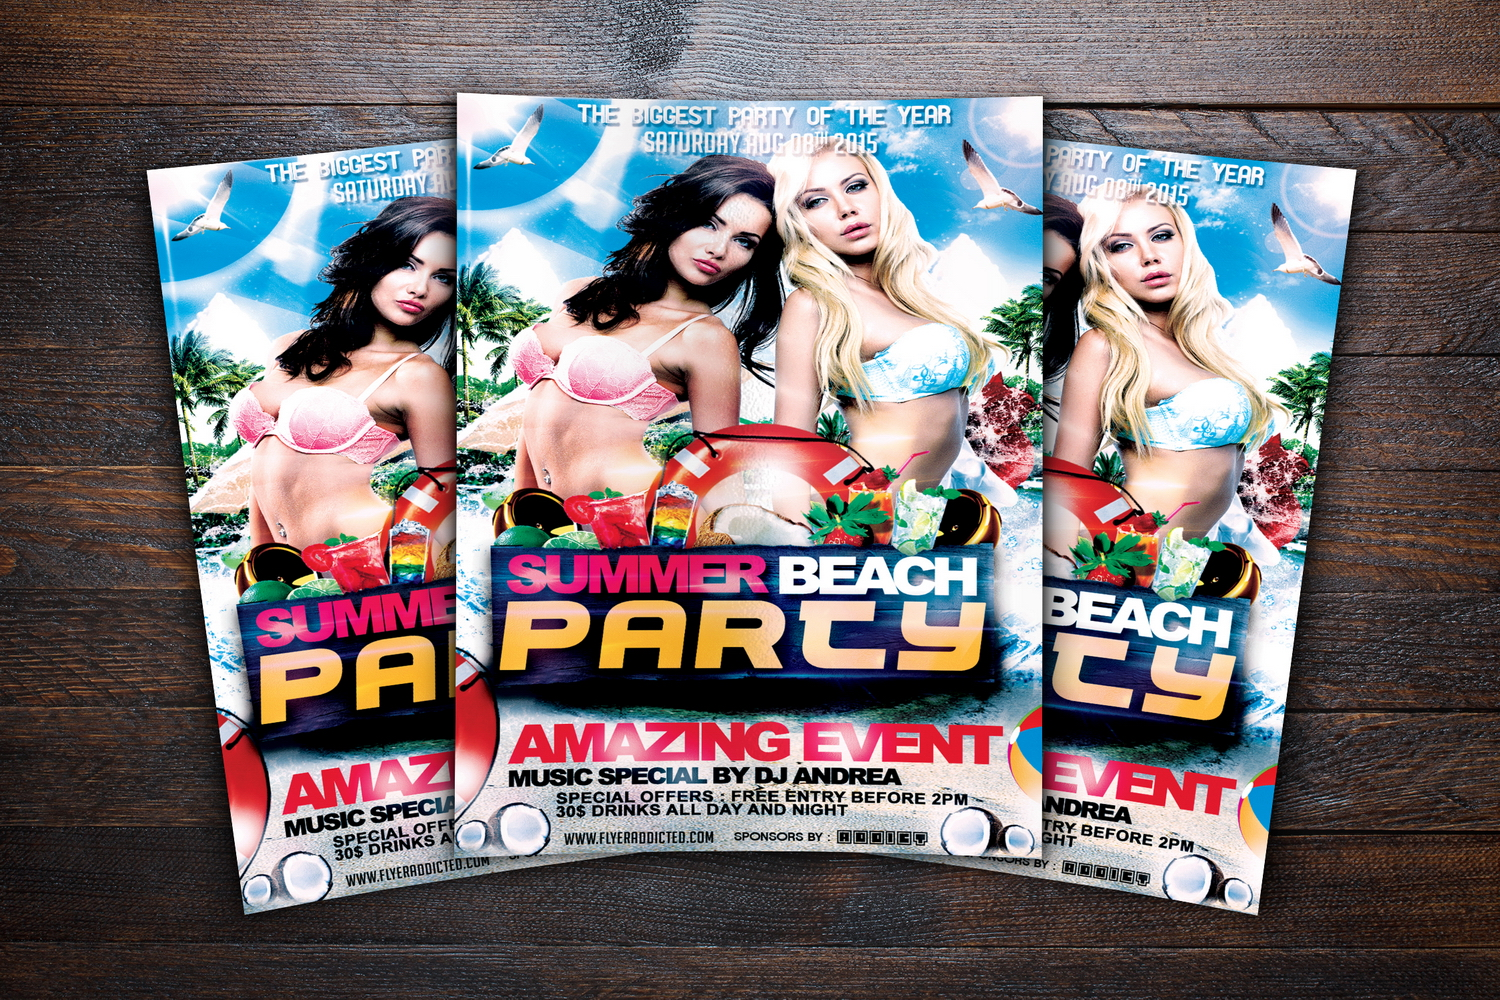 Summer Beach Party Flyer example image 3